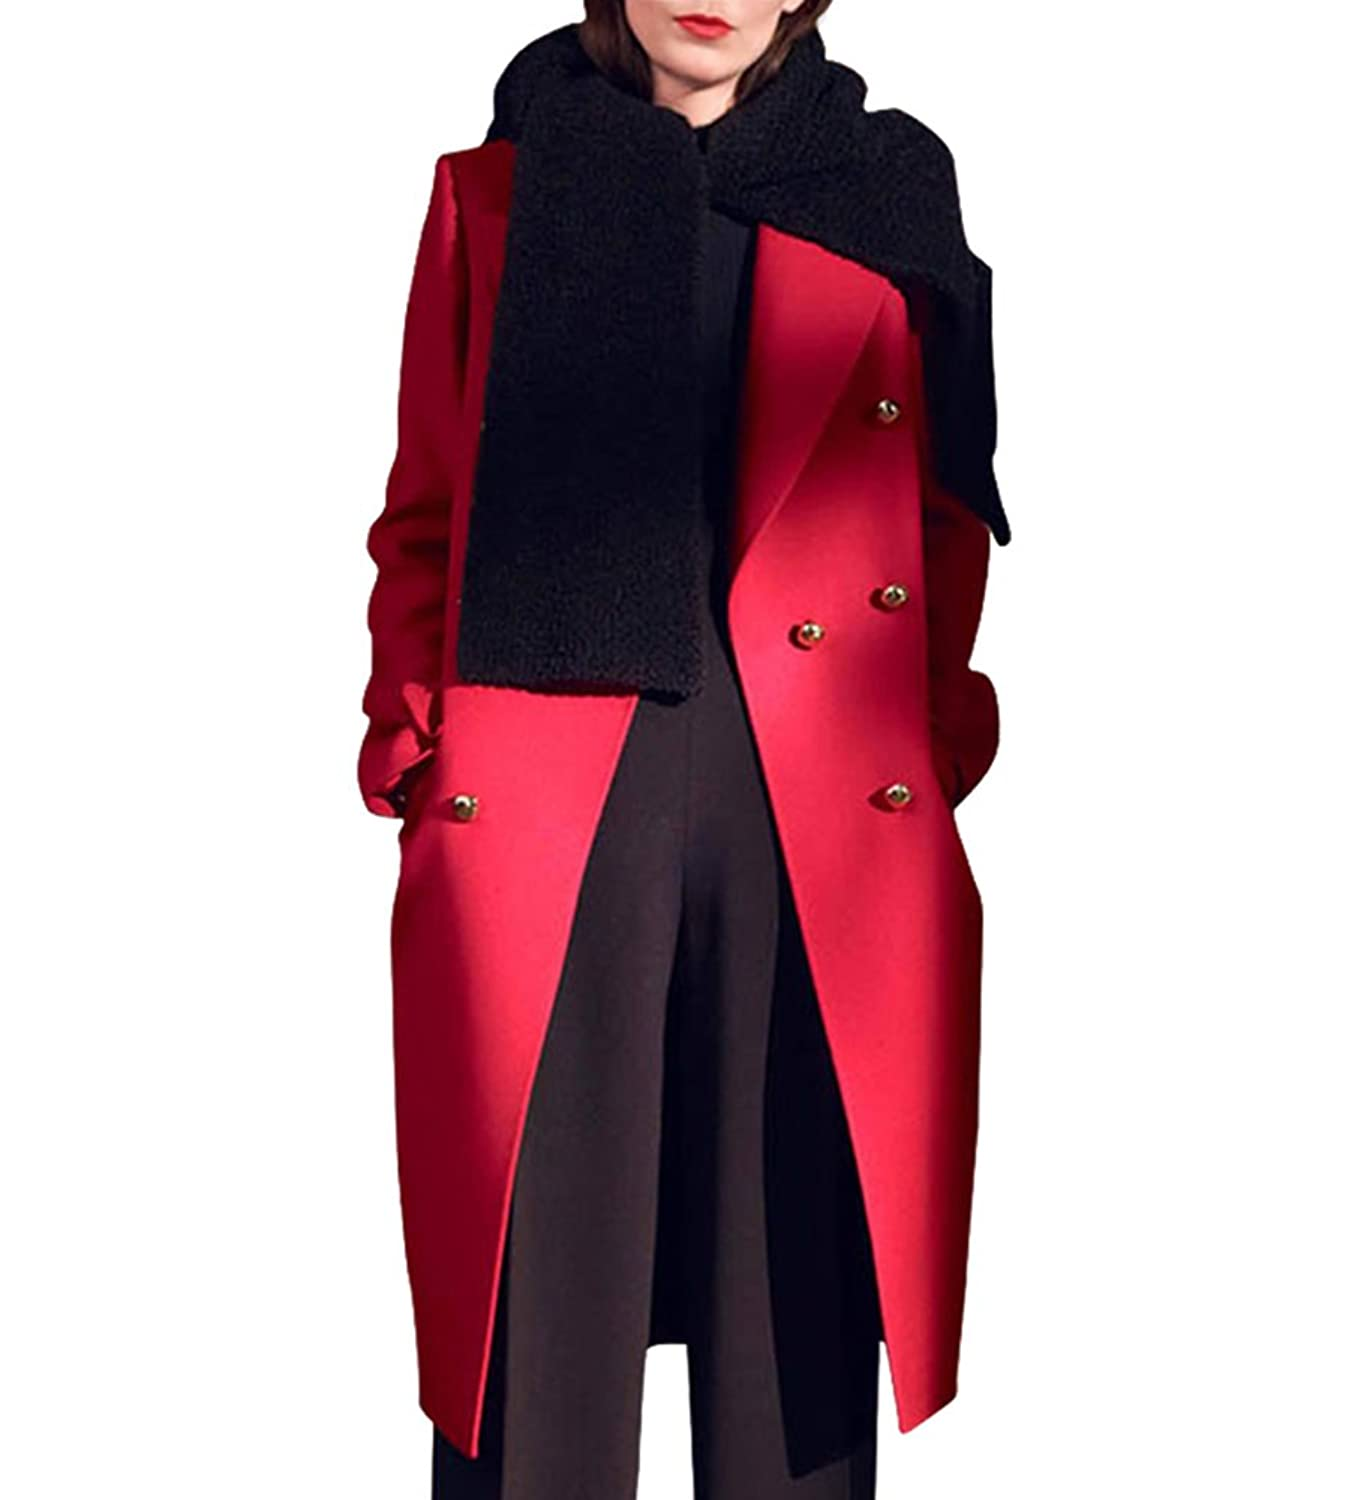 Hego Women's 2016 Winter Red Double Breasted Long Wool Coat H3233